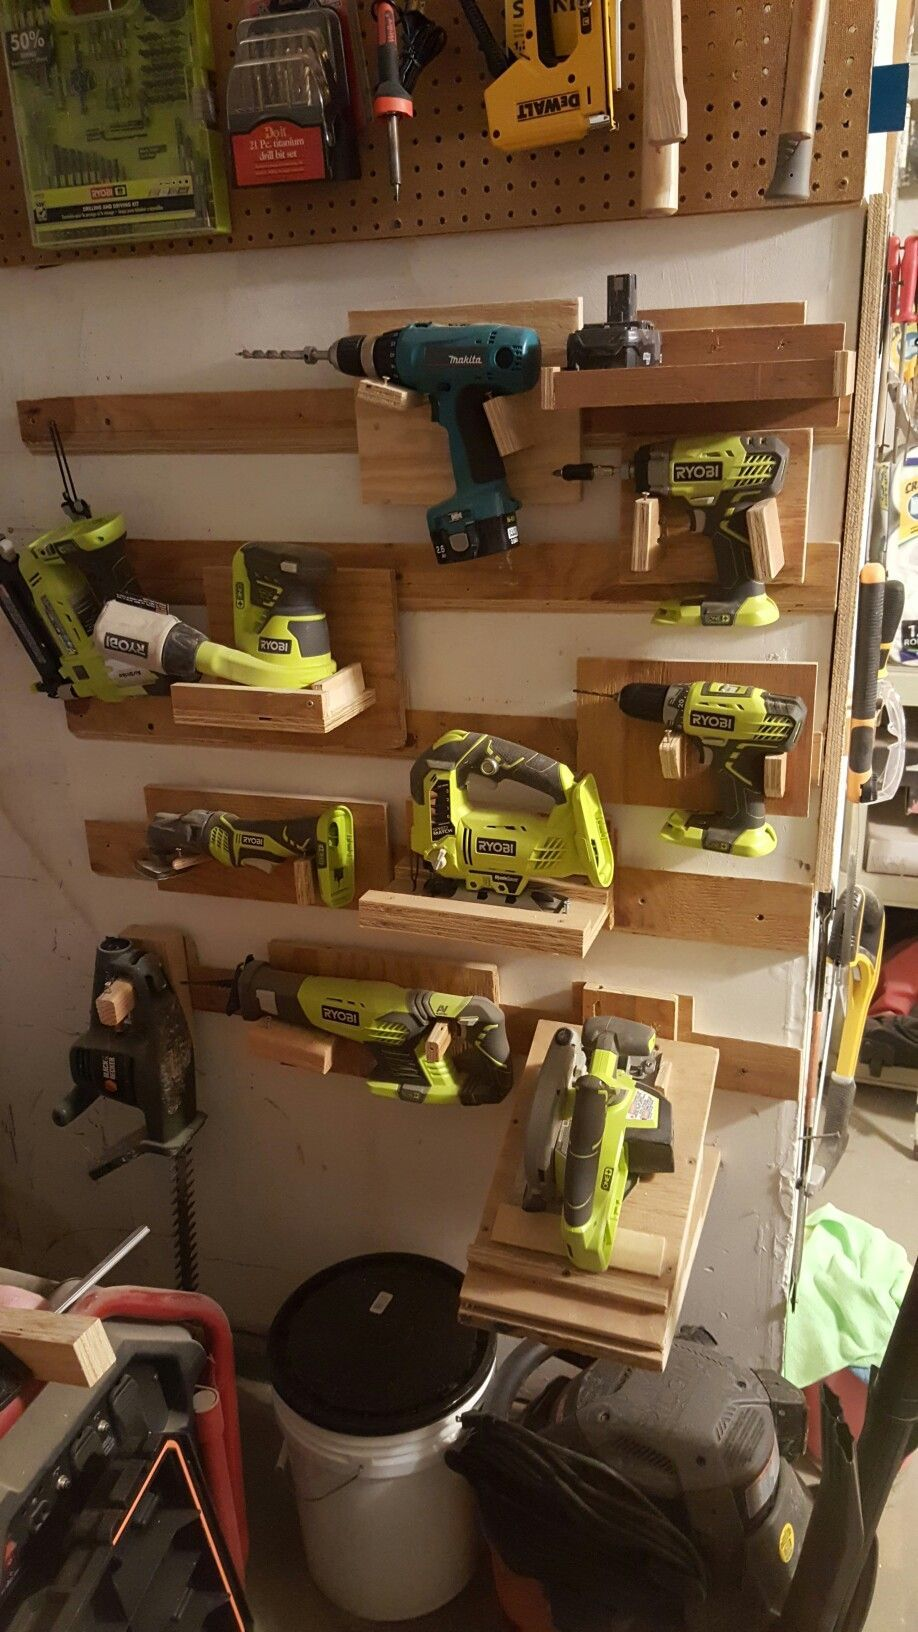 FrenchCleats powertoolstorage. takes up too much space